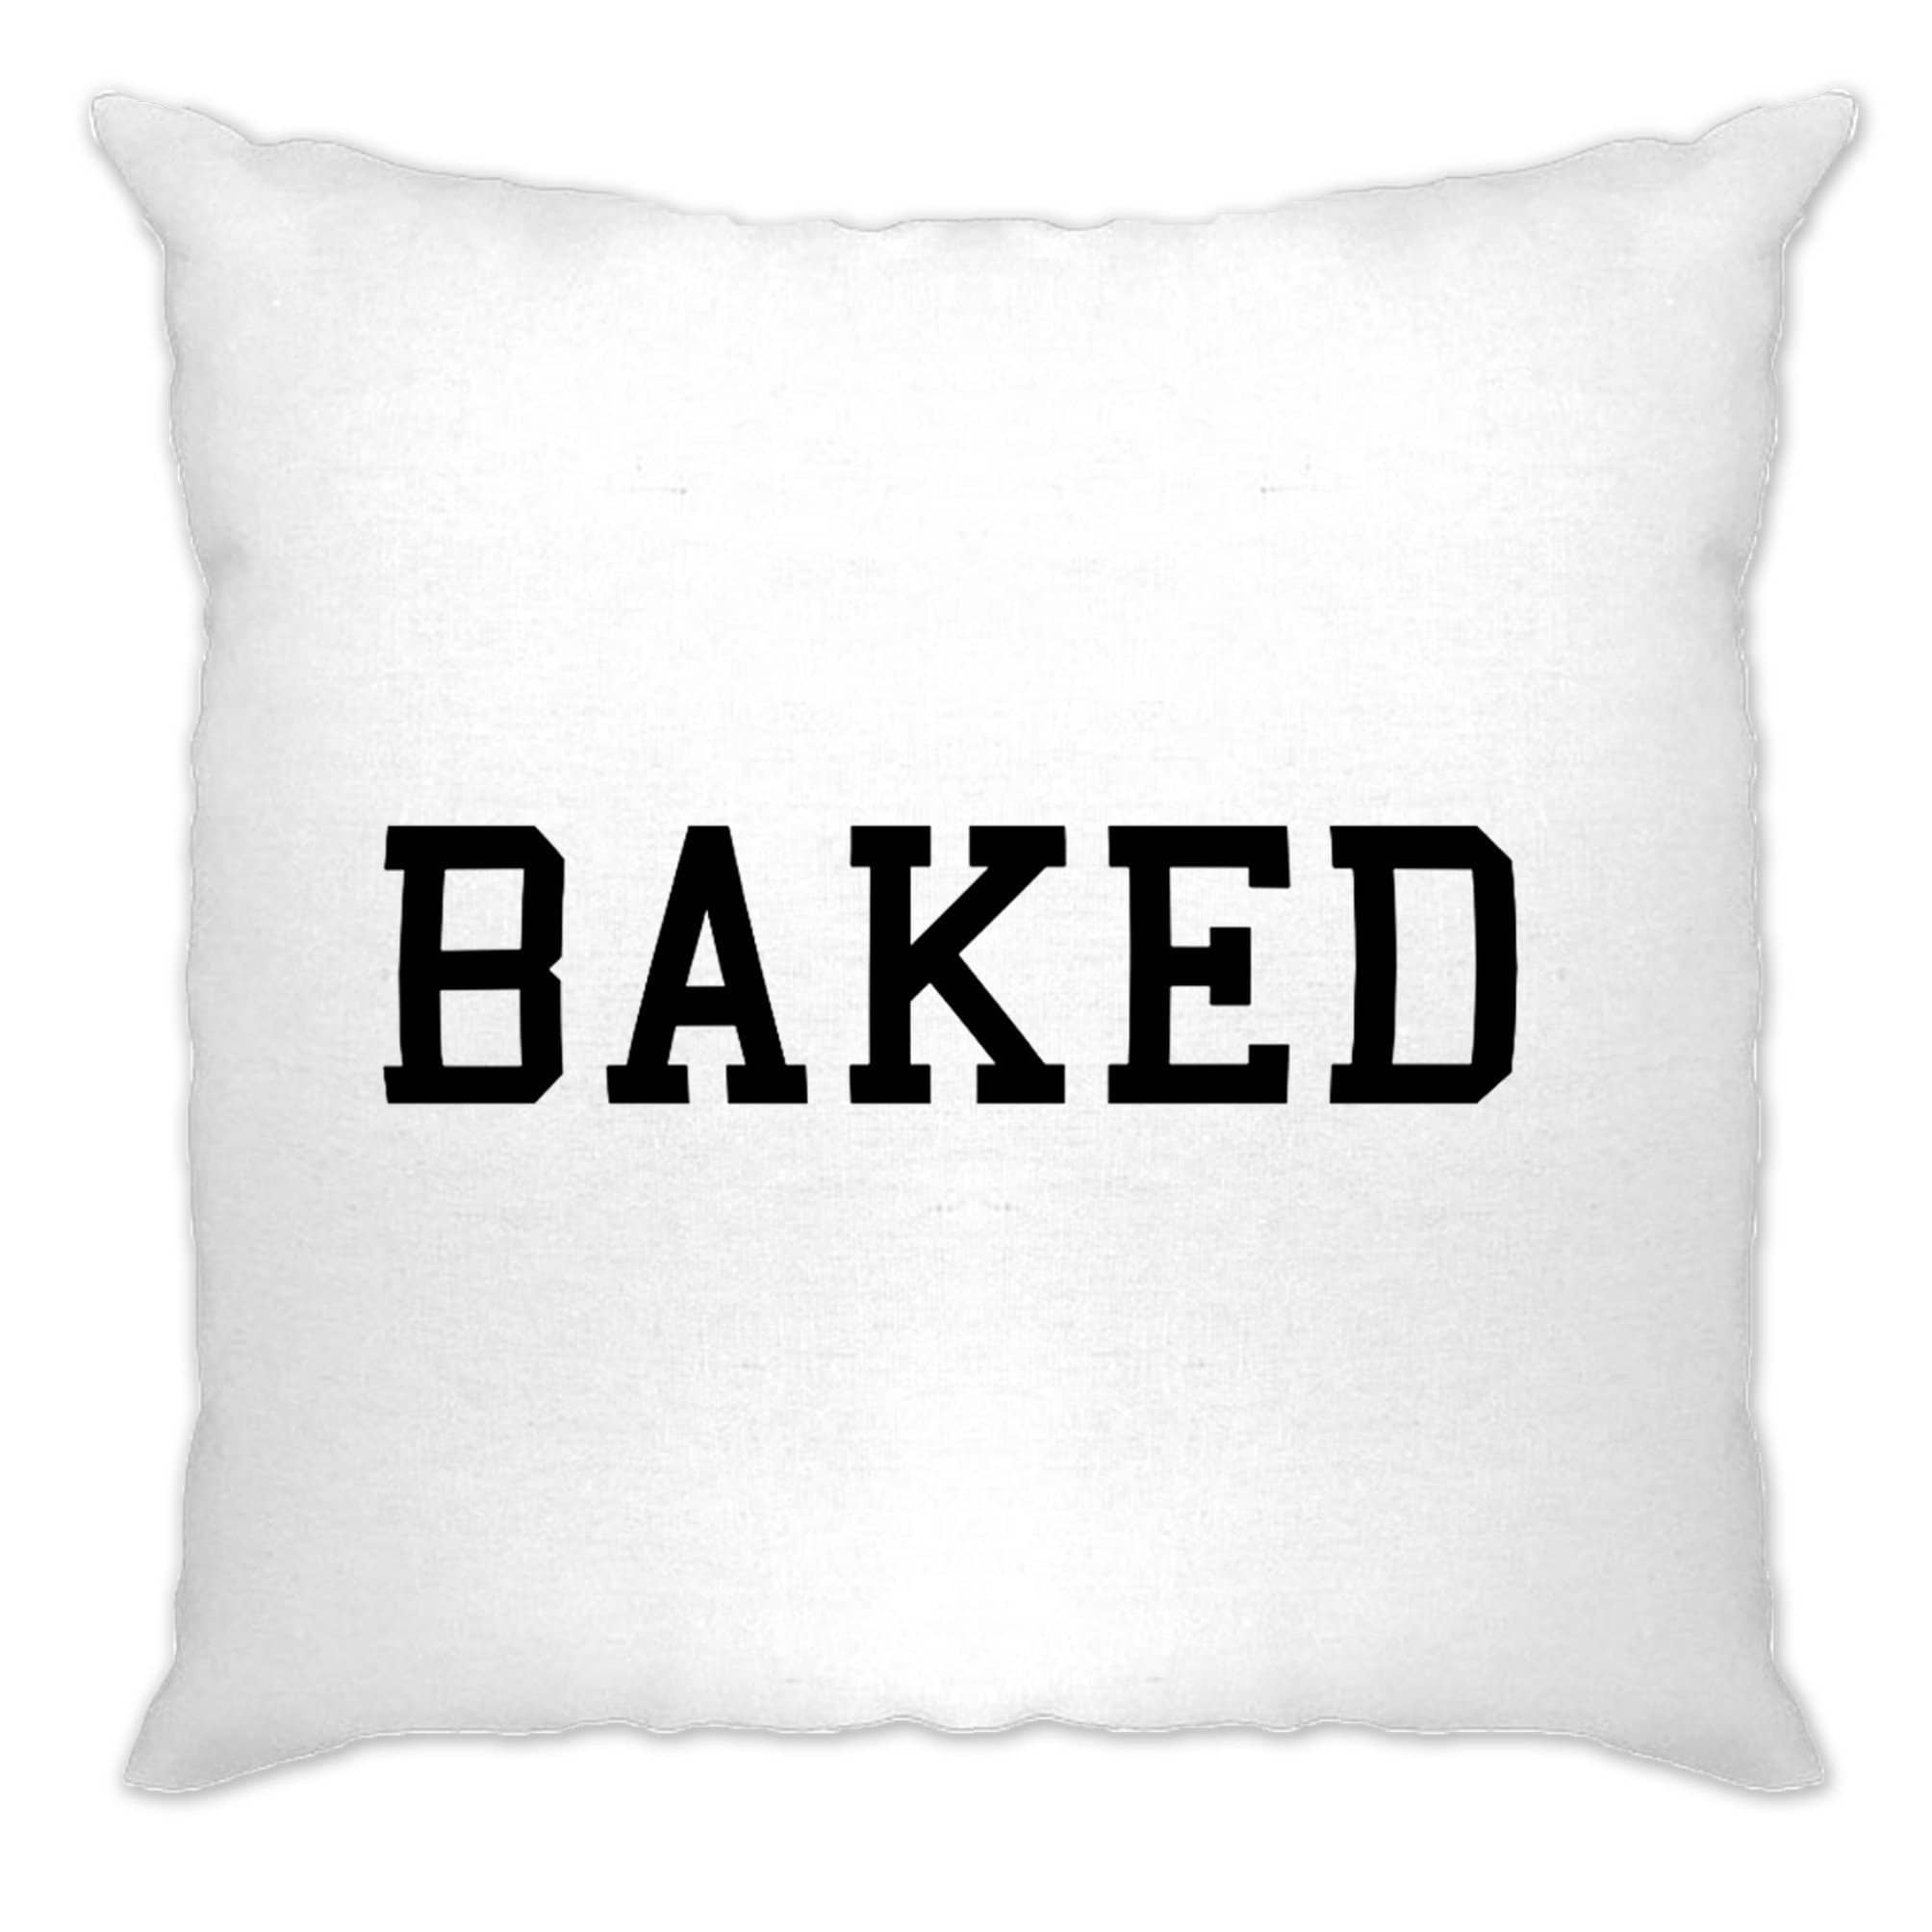 BAKED Cushion Cover College Style Printed Slogan